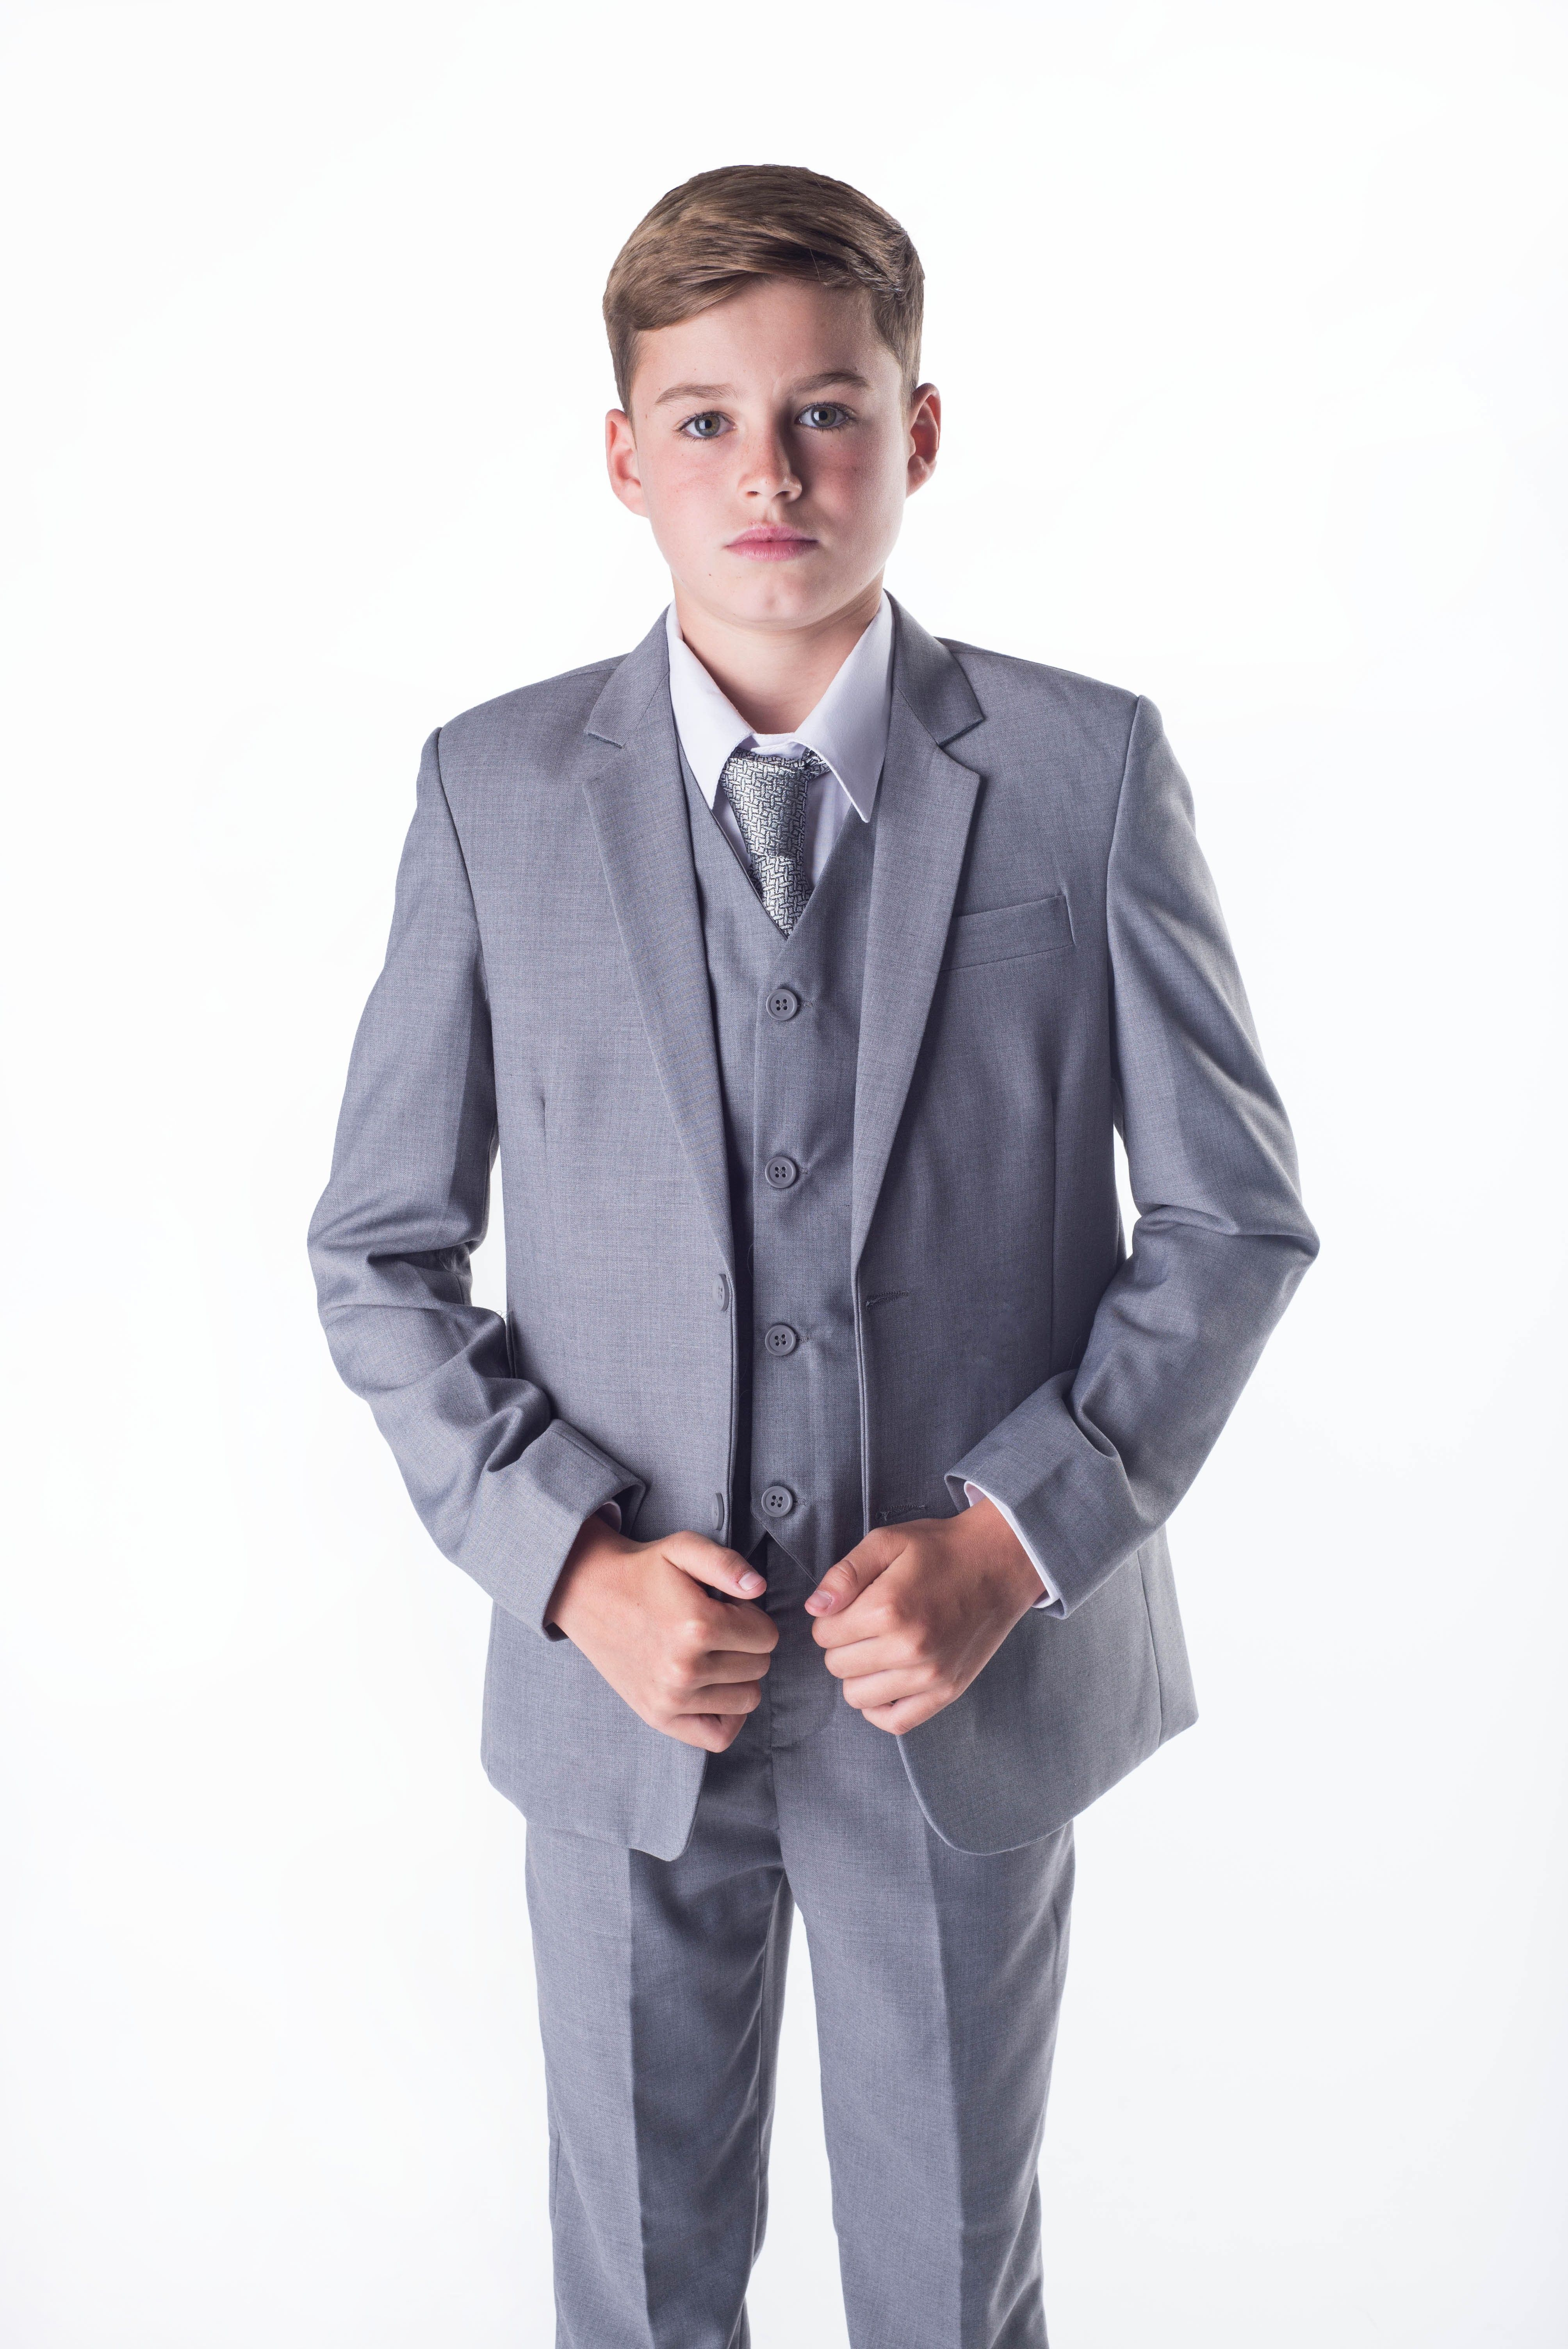 5 Piece Boys Grey suit Alexander - Boys 5 Piece Suits - Boys Suits ...